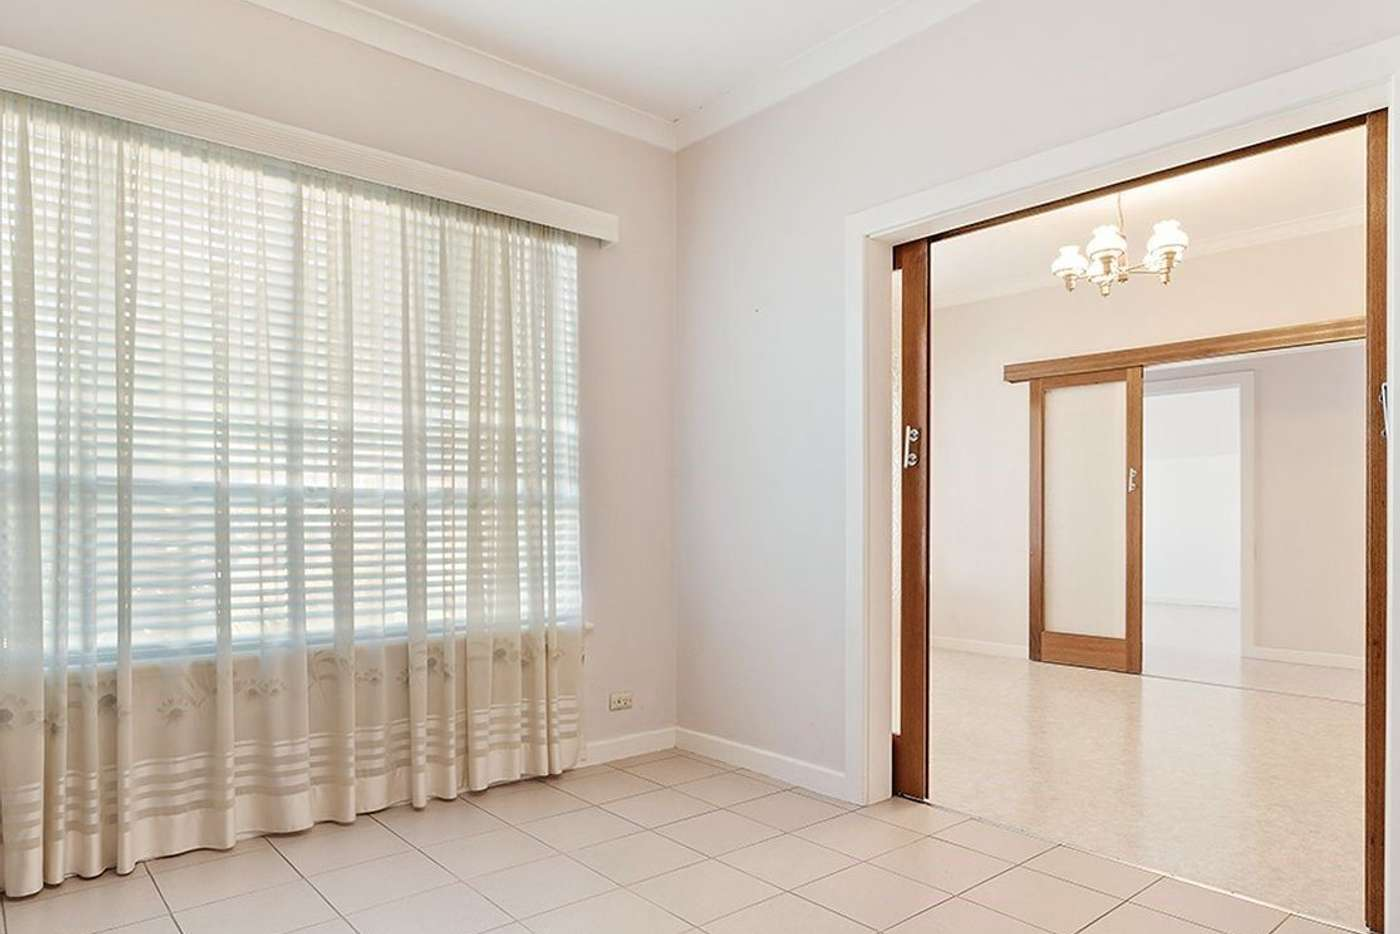 Sixth view of Homely house listing, 8 Wattle Street, Campbelltown SA 5074